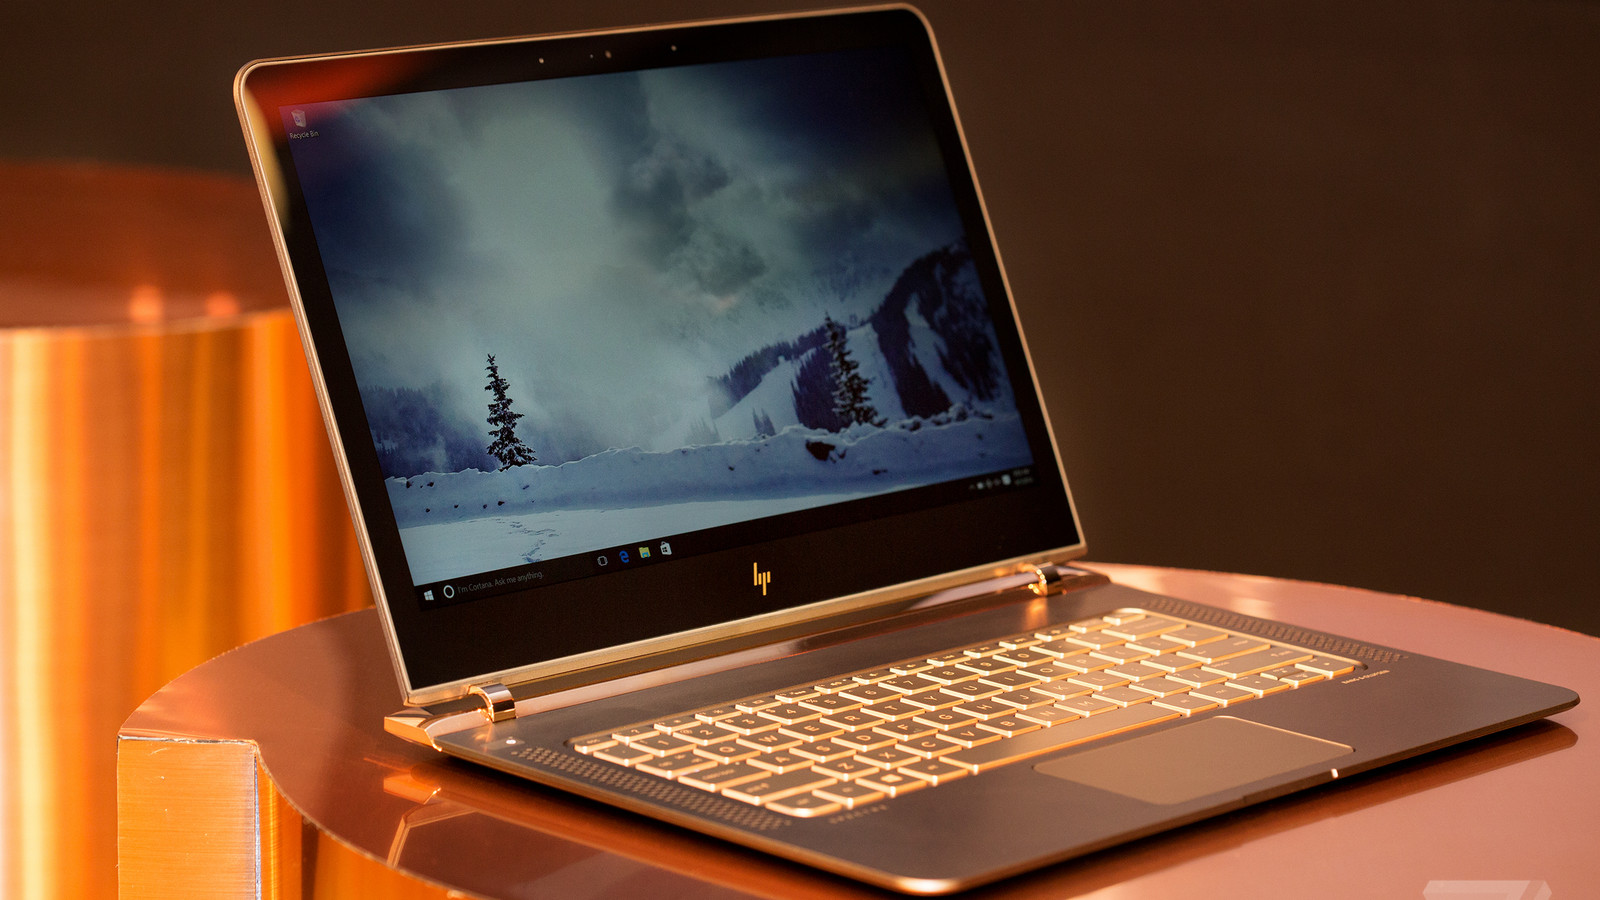 Mossberg HP Aims At The Mac With Super Slim Laptop